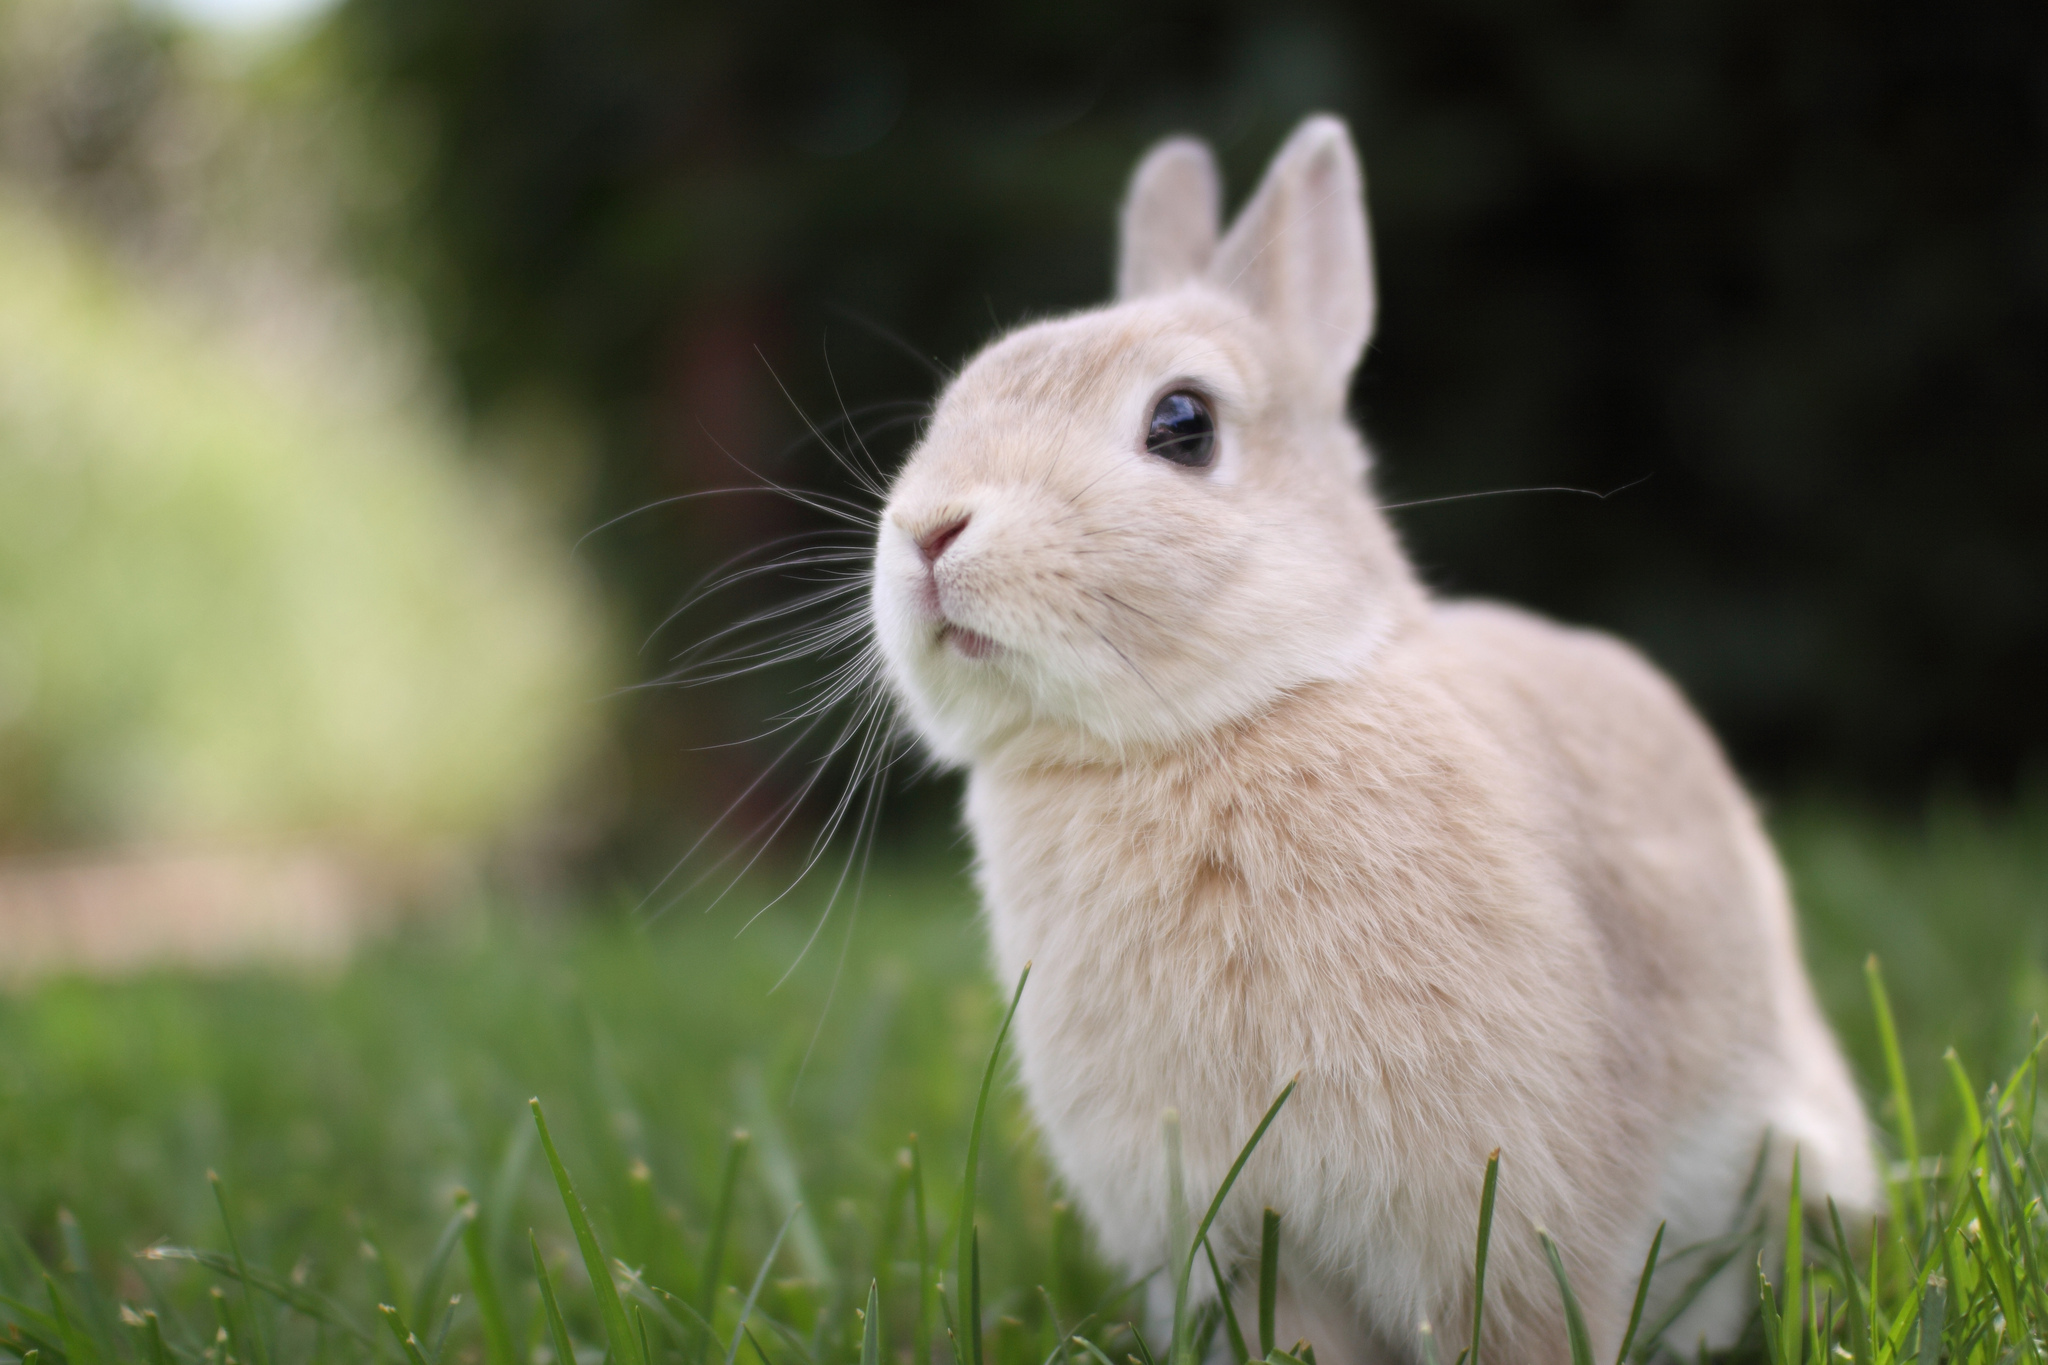 Cute White Rabbit Wallpapers For Desktop: Rabbit Full HD Wallpaper And Background Image